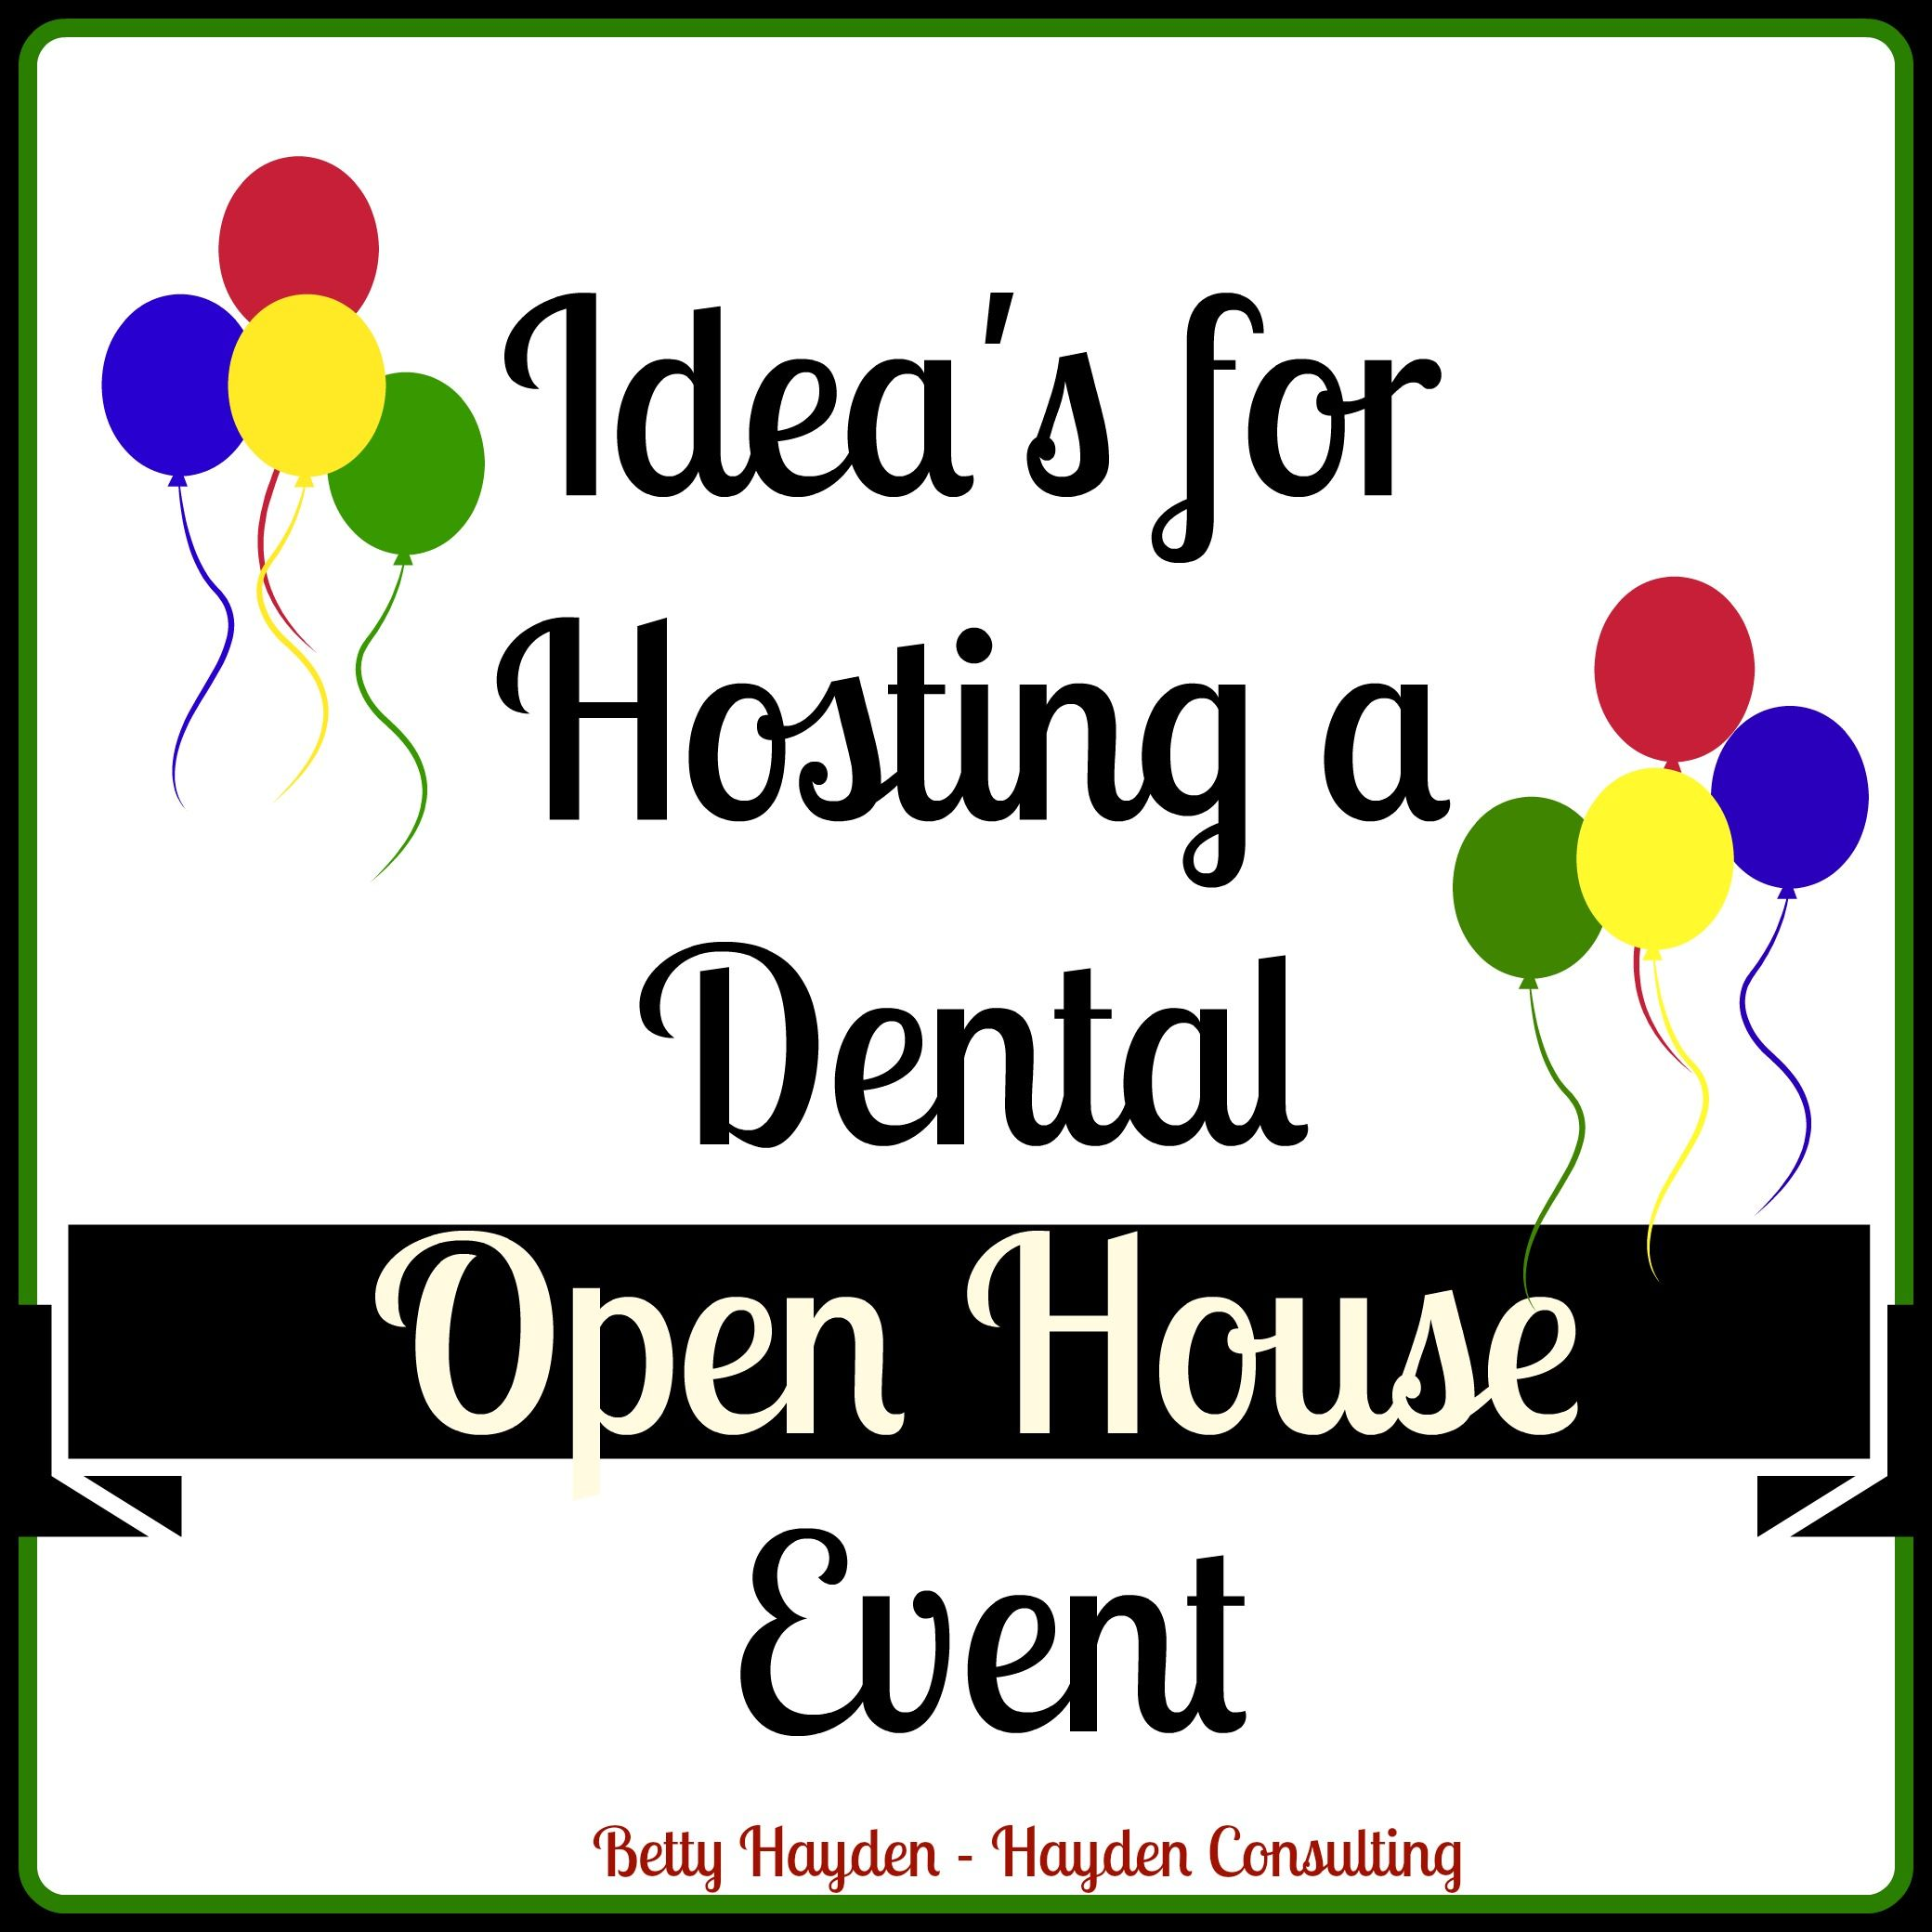 Dental Office Open House Event Ideas